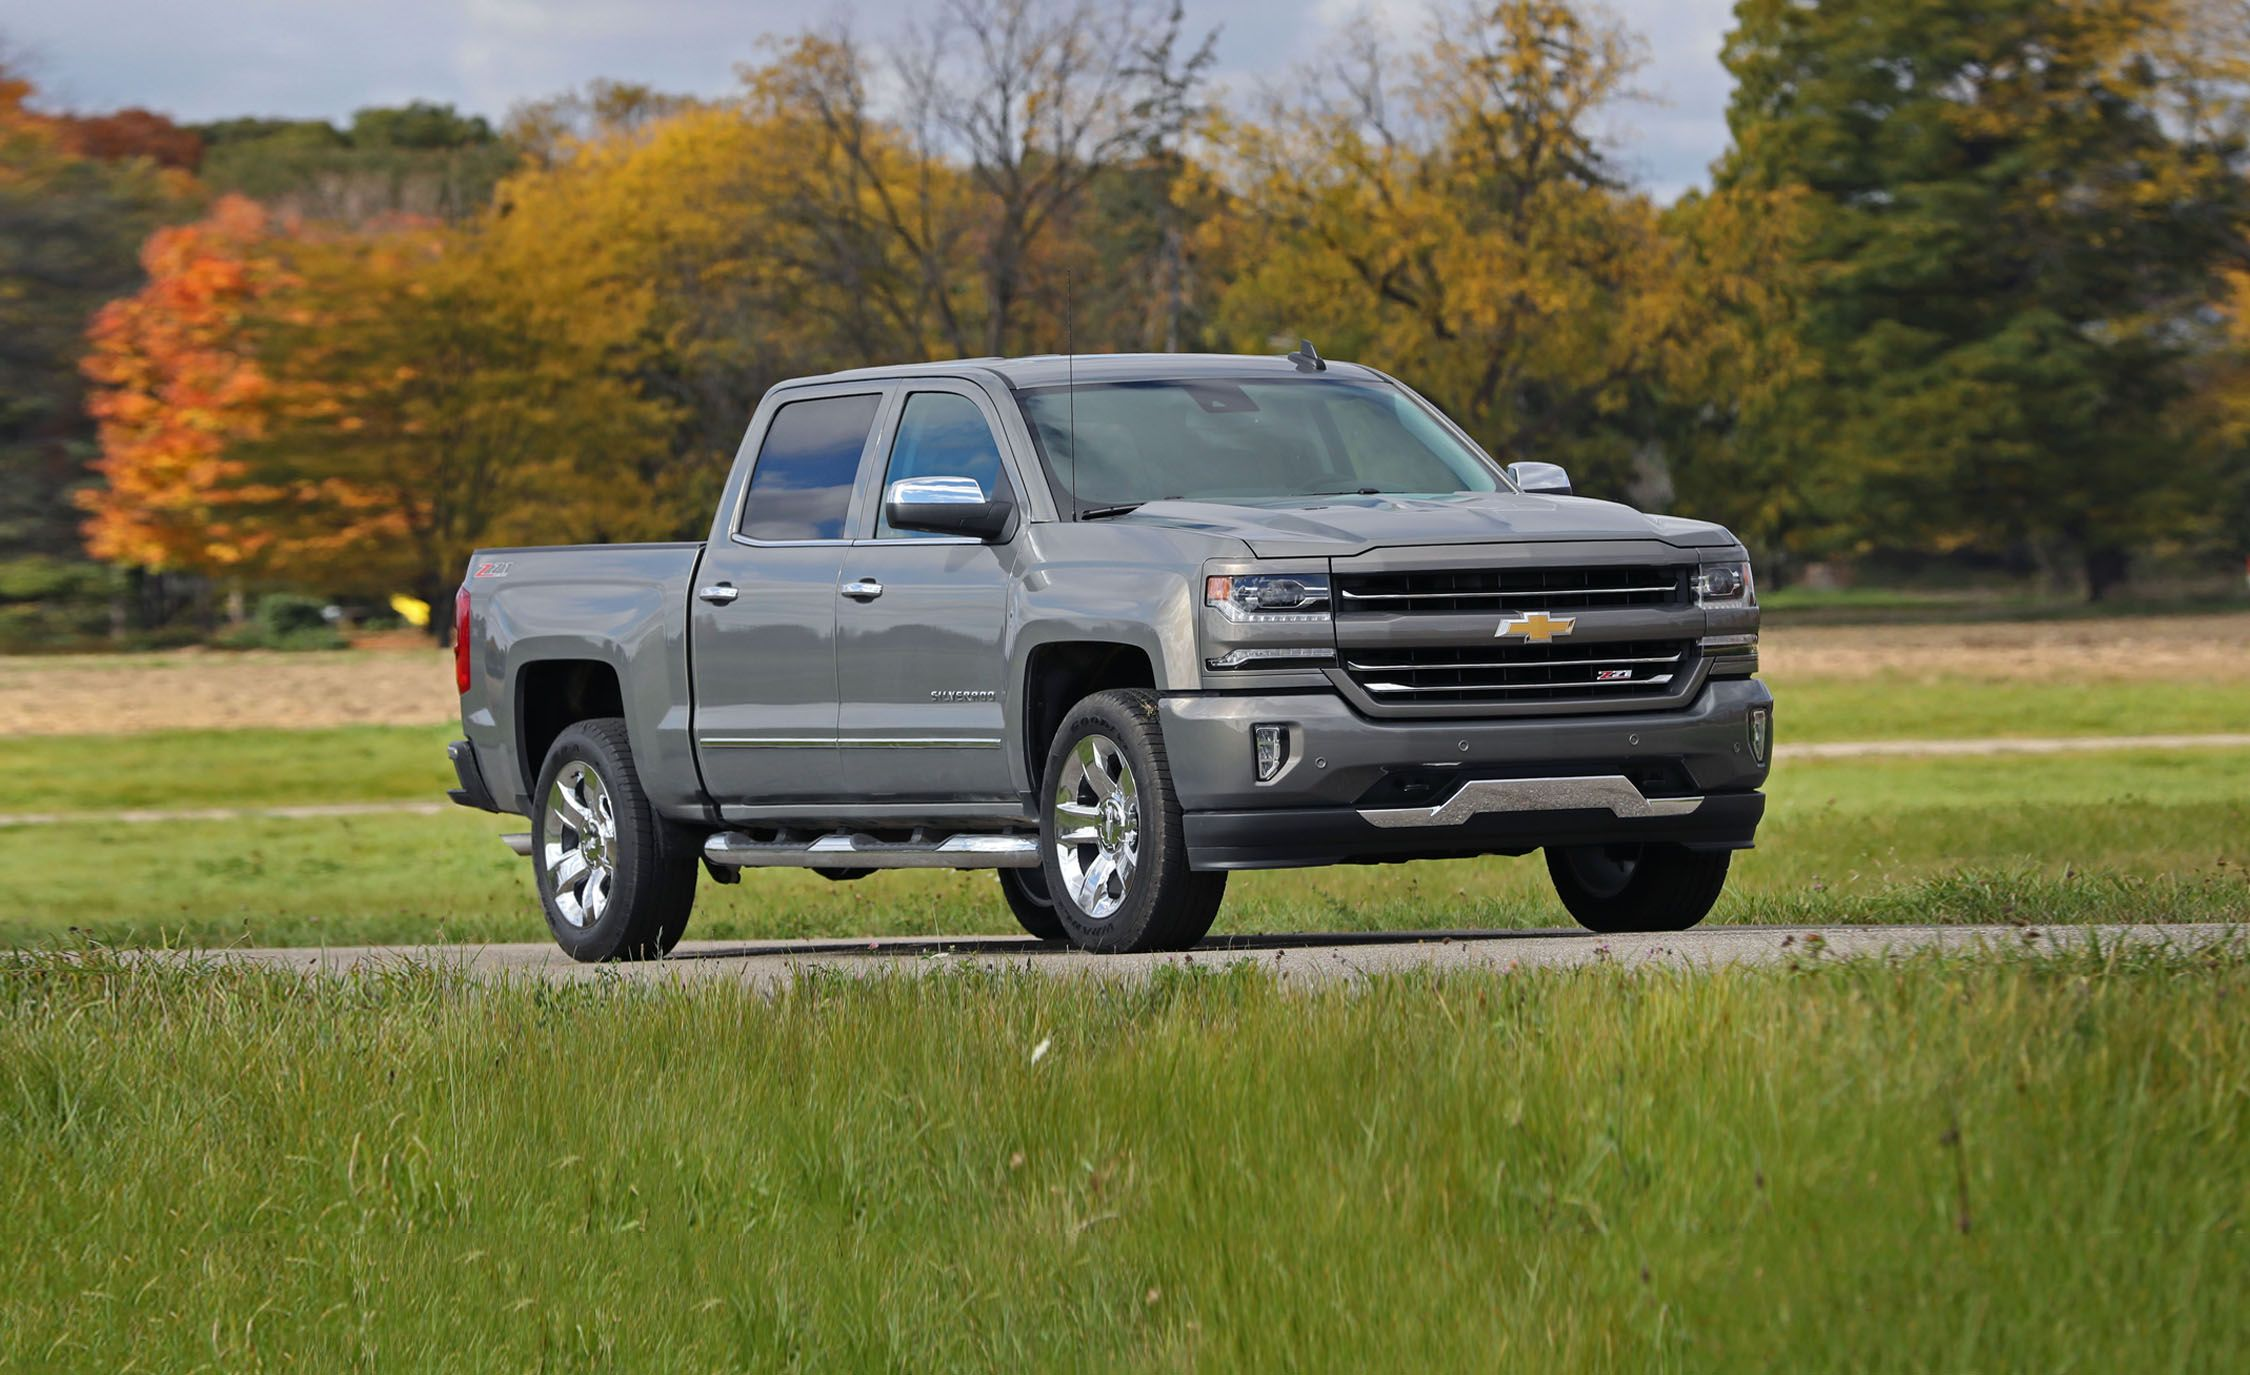 2018 Chevrolet Silverado 1500 Interior Review Car And